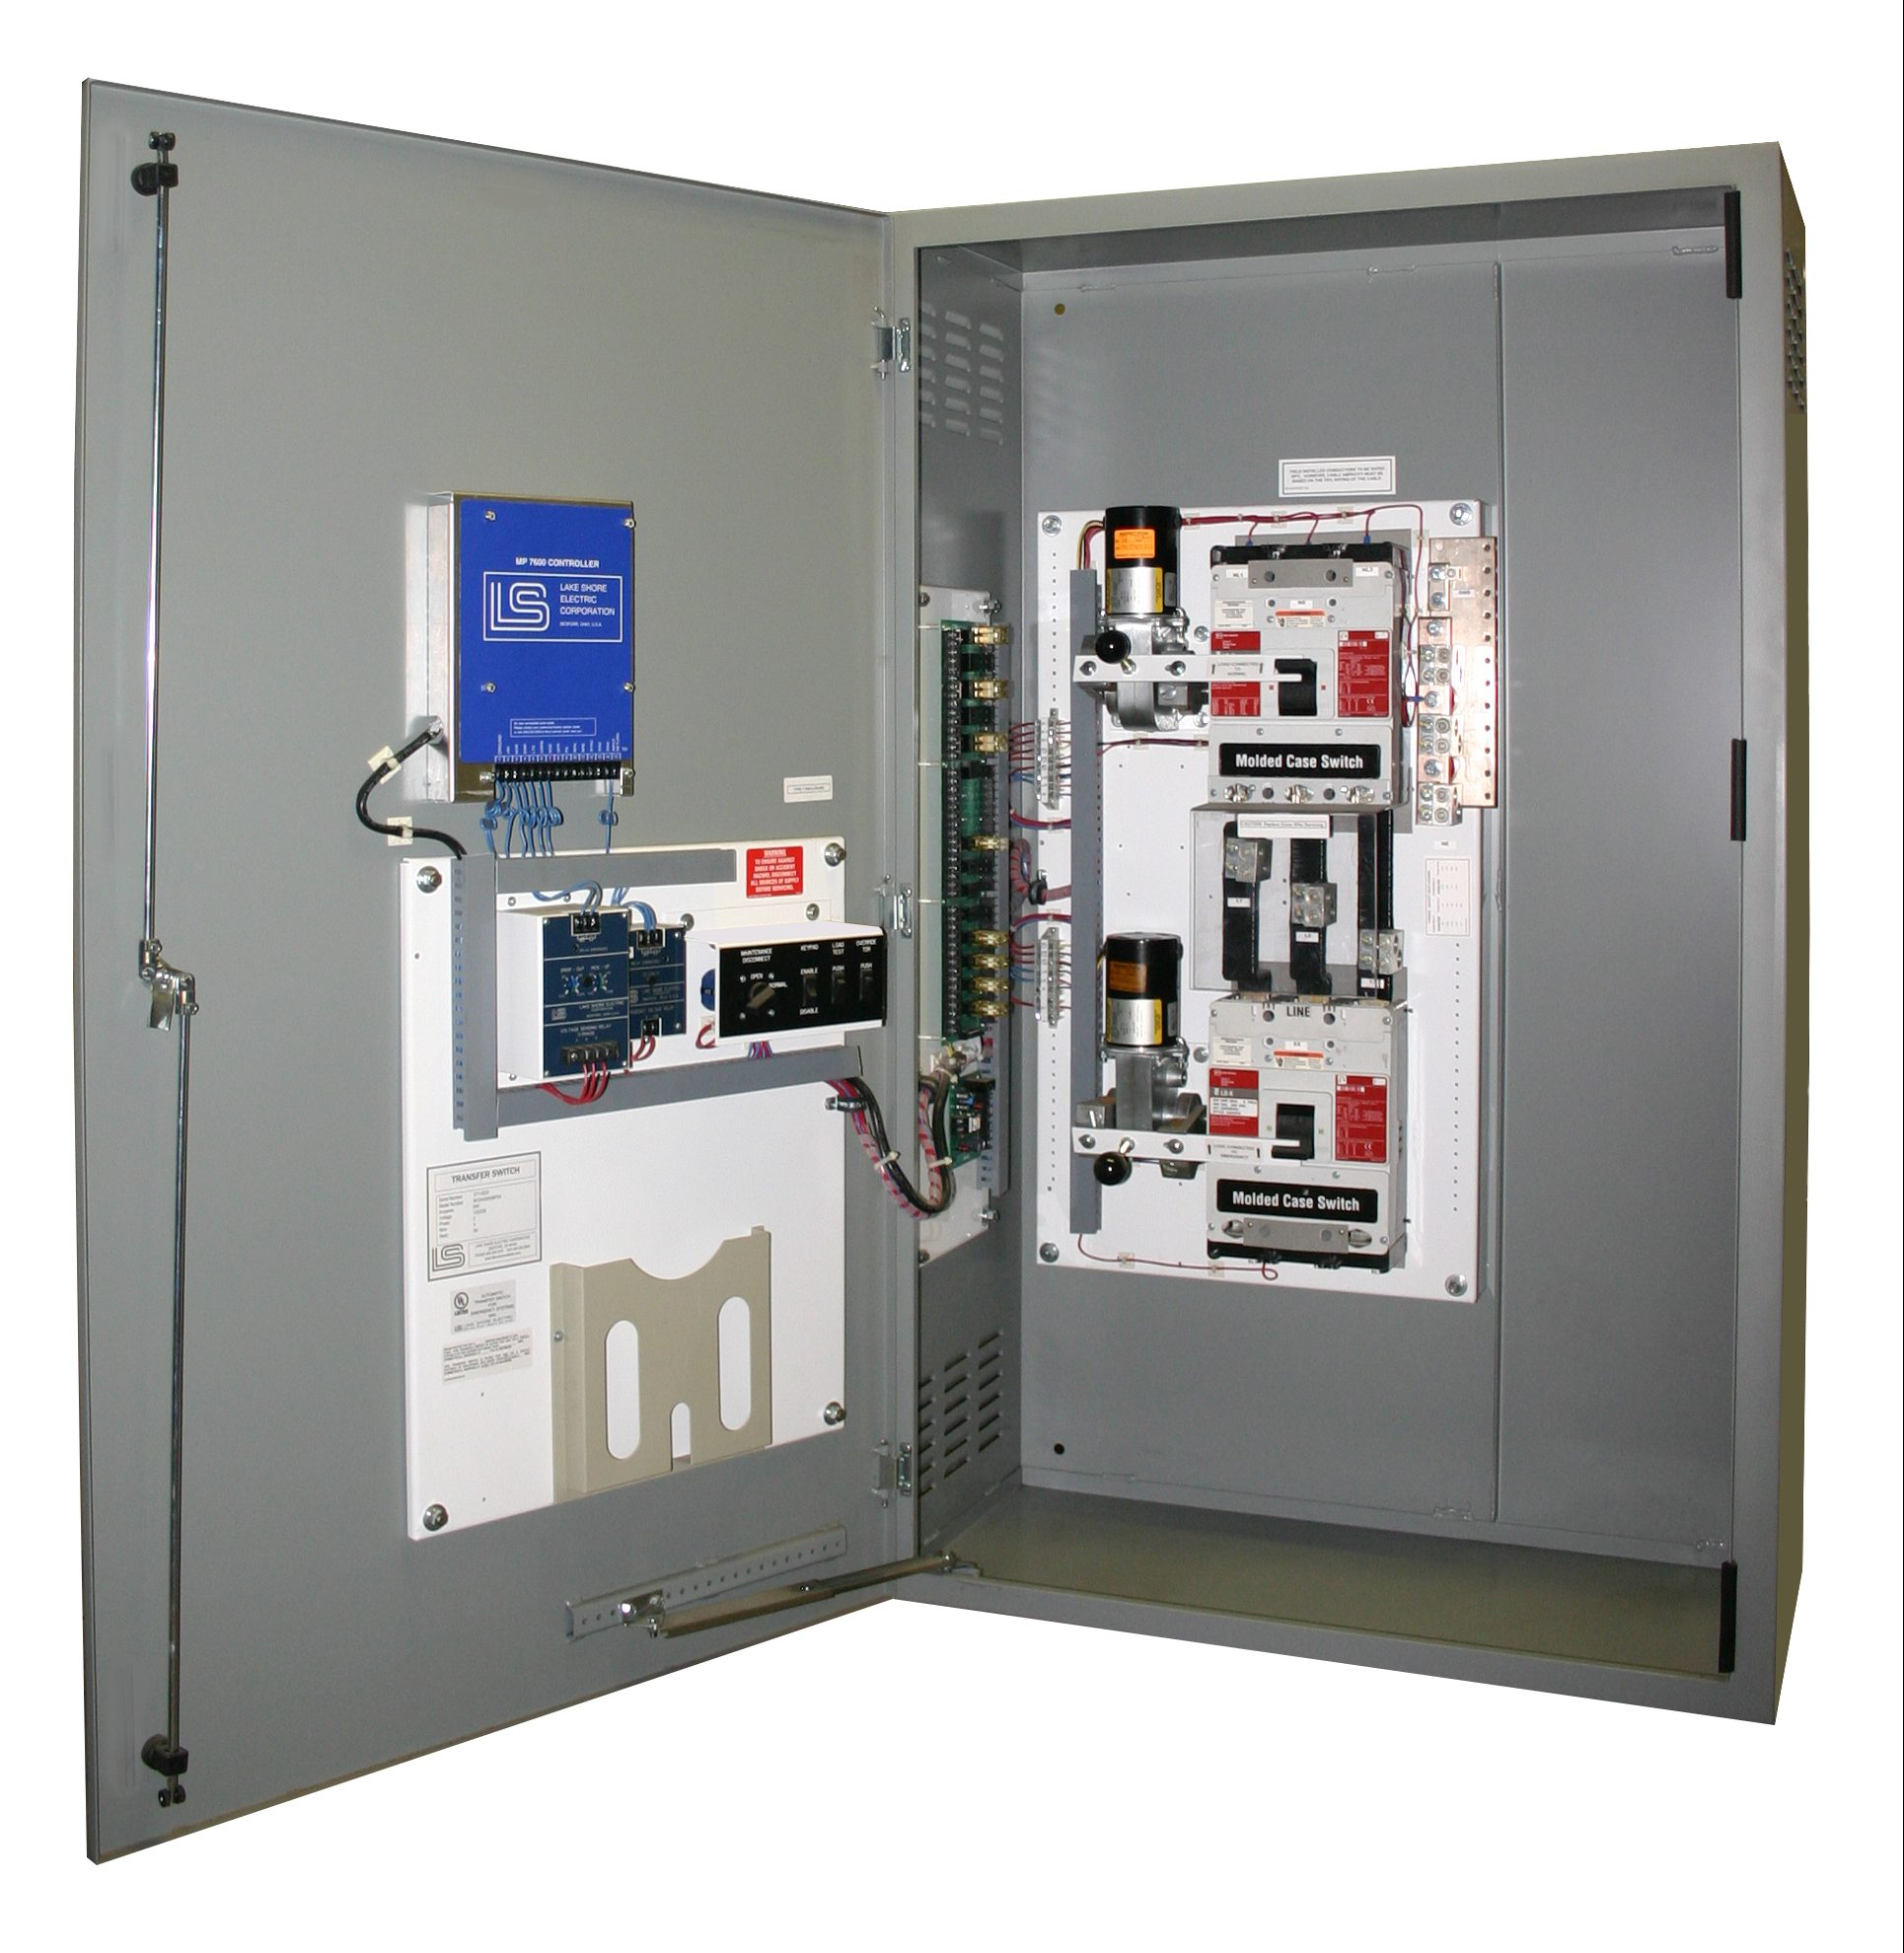 Wiring Diagram Furthermore Generator Automatic Transfer Switch Diagram